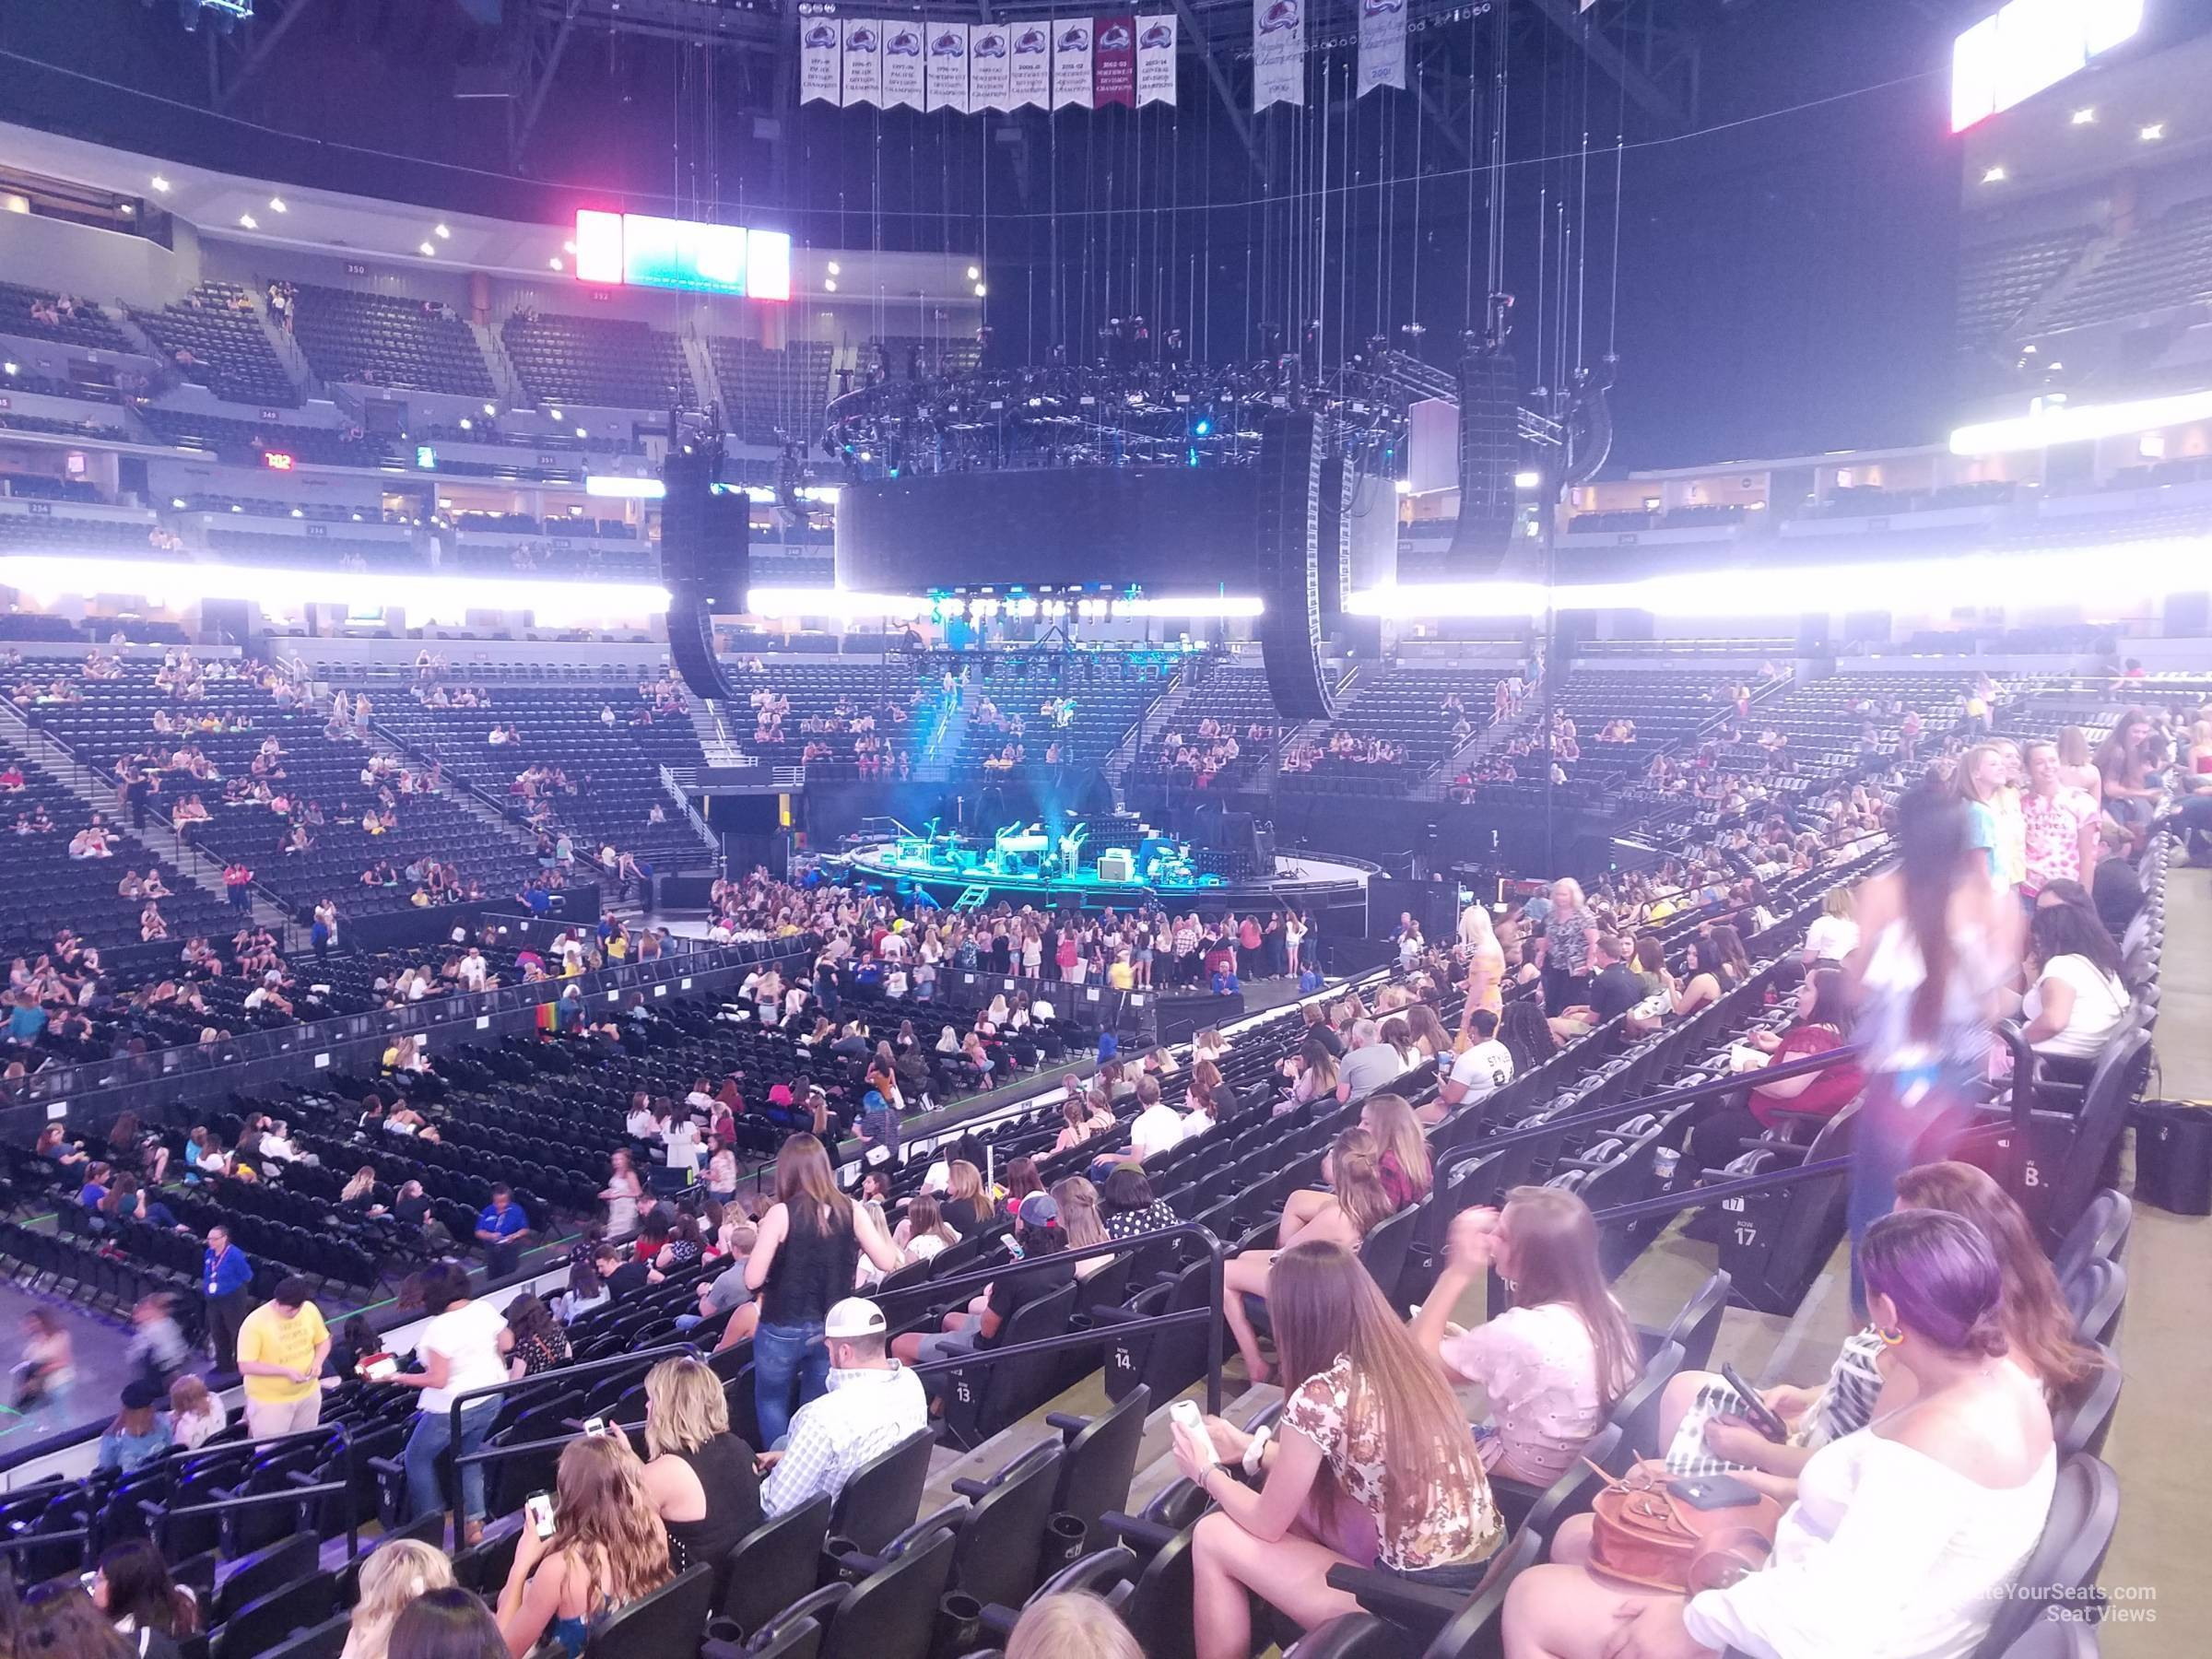 Pepsi Center: Pepsi Center Section 104 Concert Seating